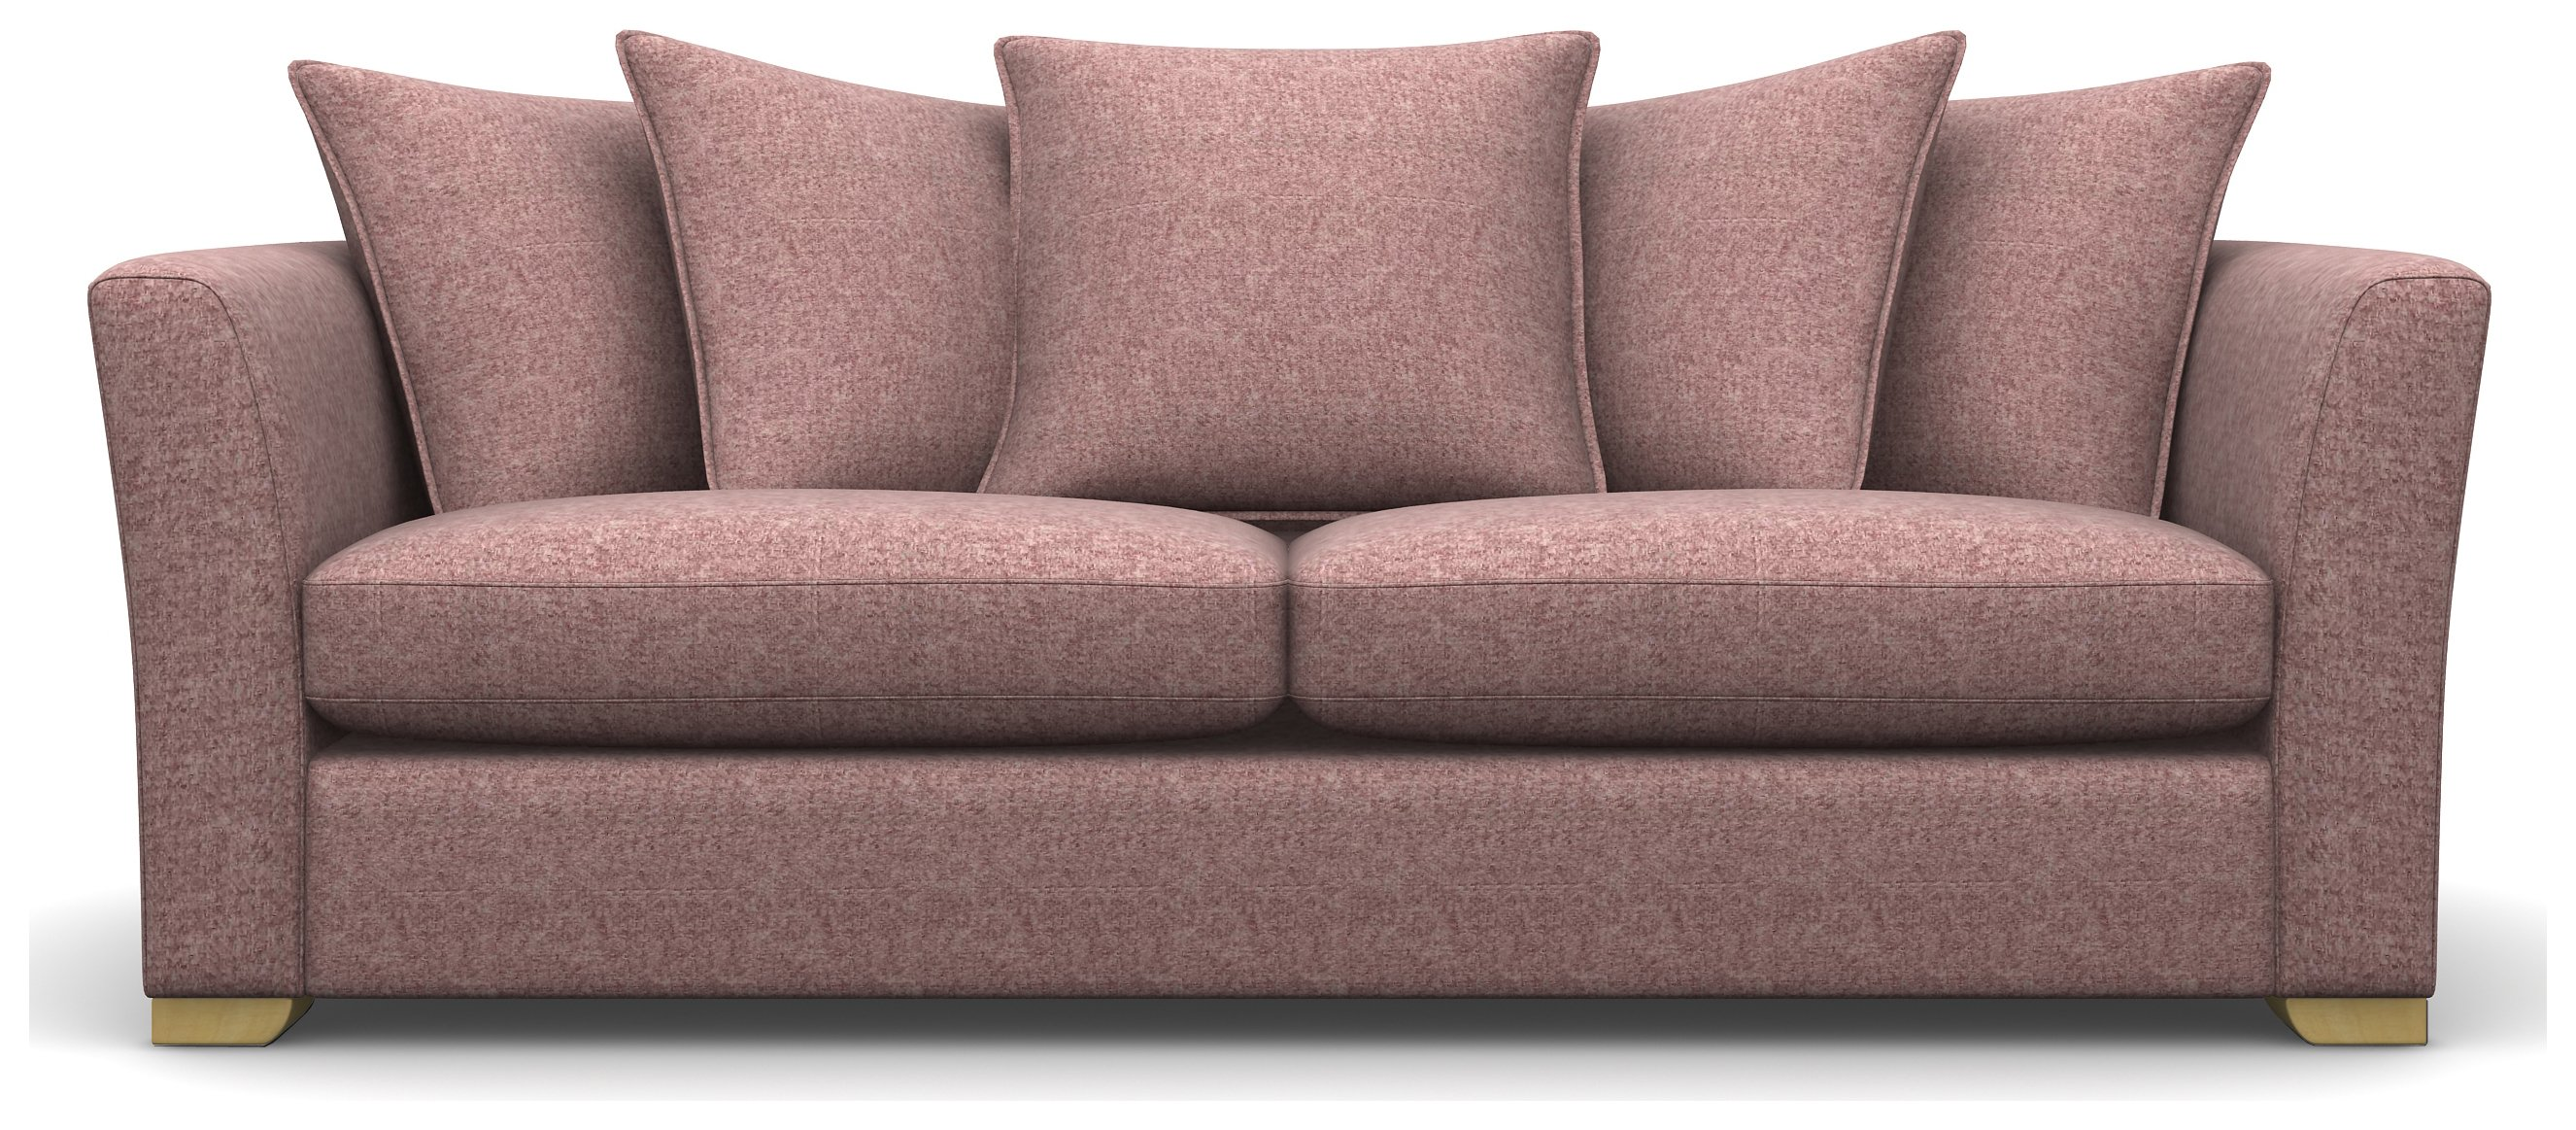 Heart of House Libby 3 Seater Tweed Fabric Sofa - Pink